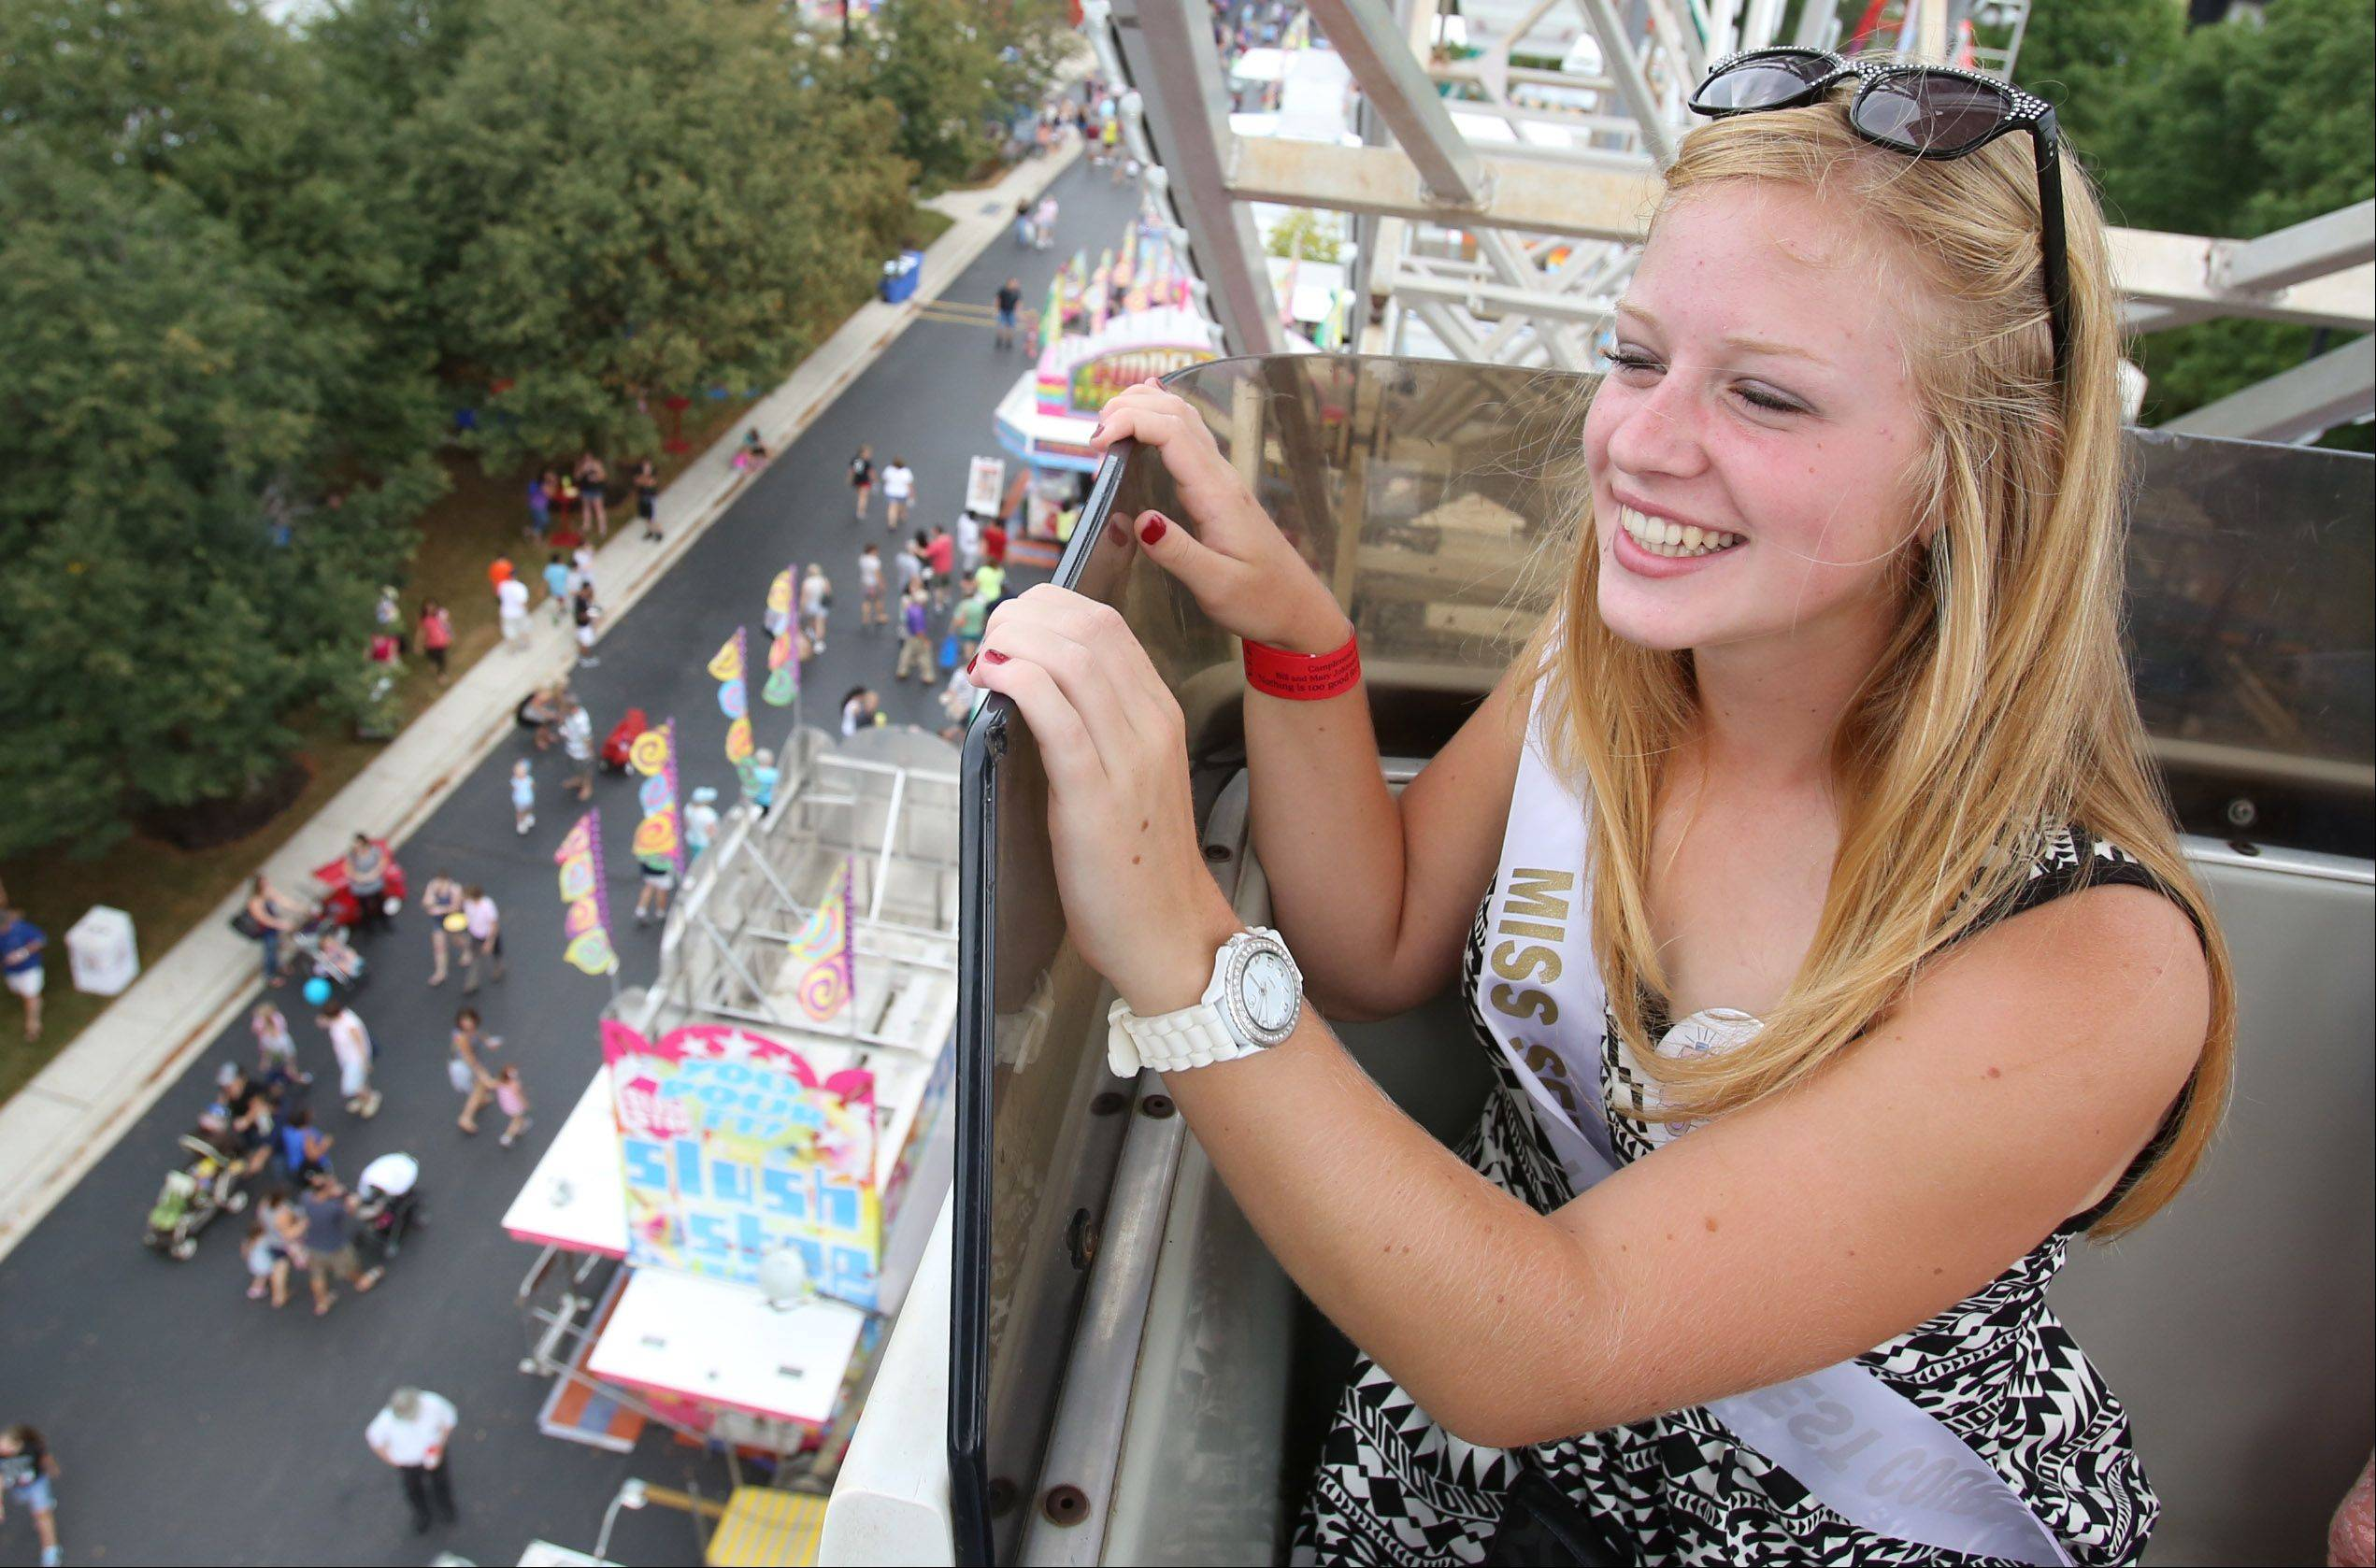 Carly Bryeans, 16, of Schaumburg, a member of the Miss Schaumburg Septemberfest court, rides the ferris wheel at Schaumburg Septemberfest at the Robert O. Atcher Municipal Grounds in Schaumburg on Saturday.